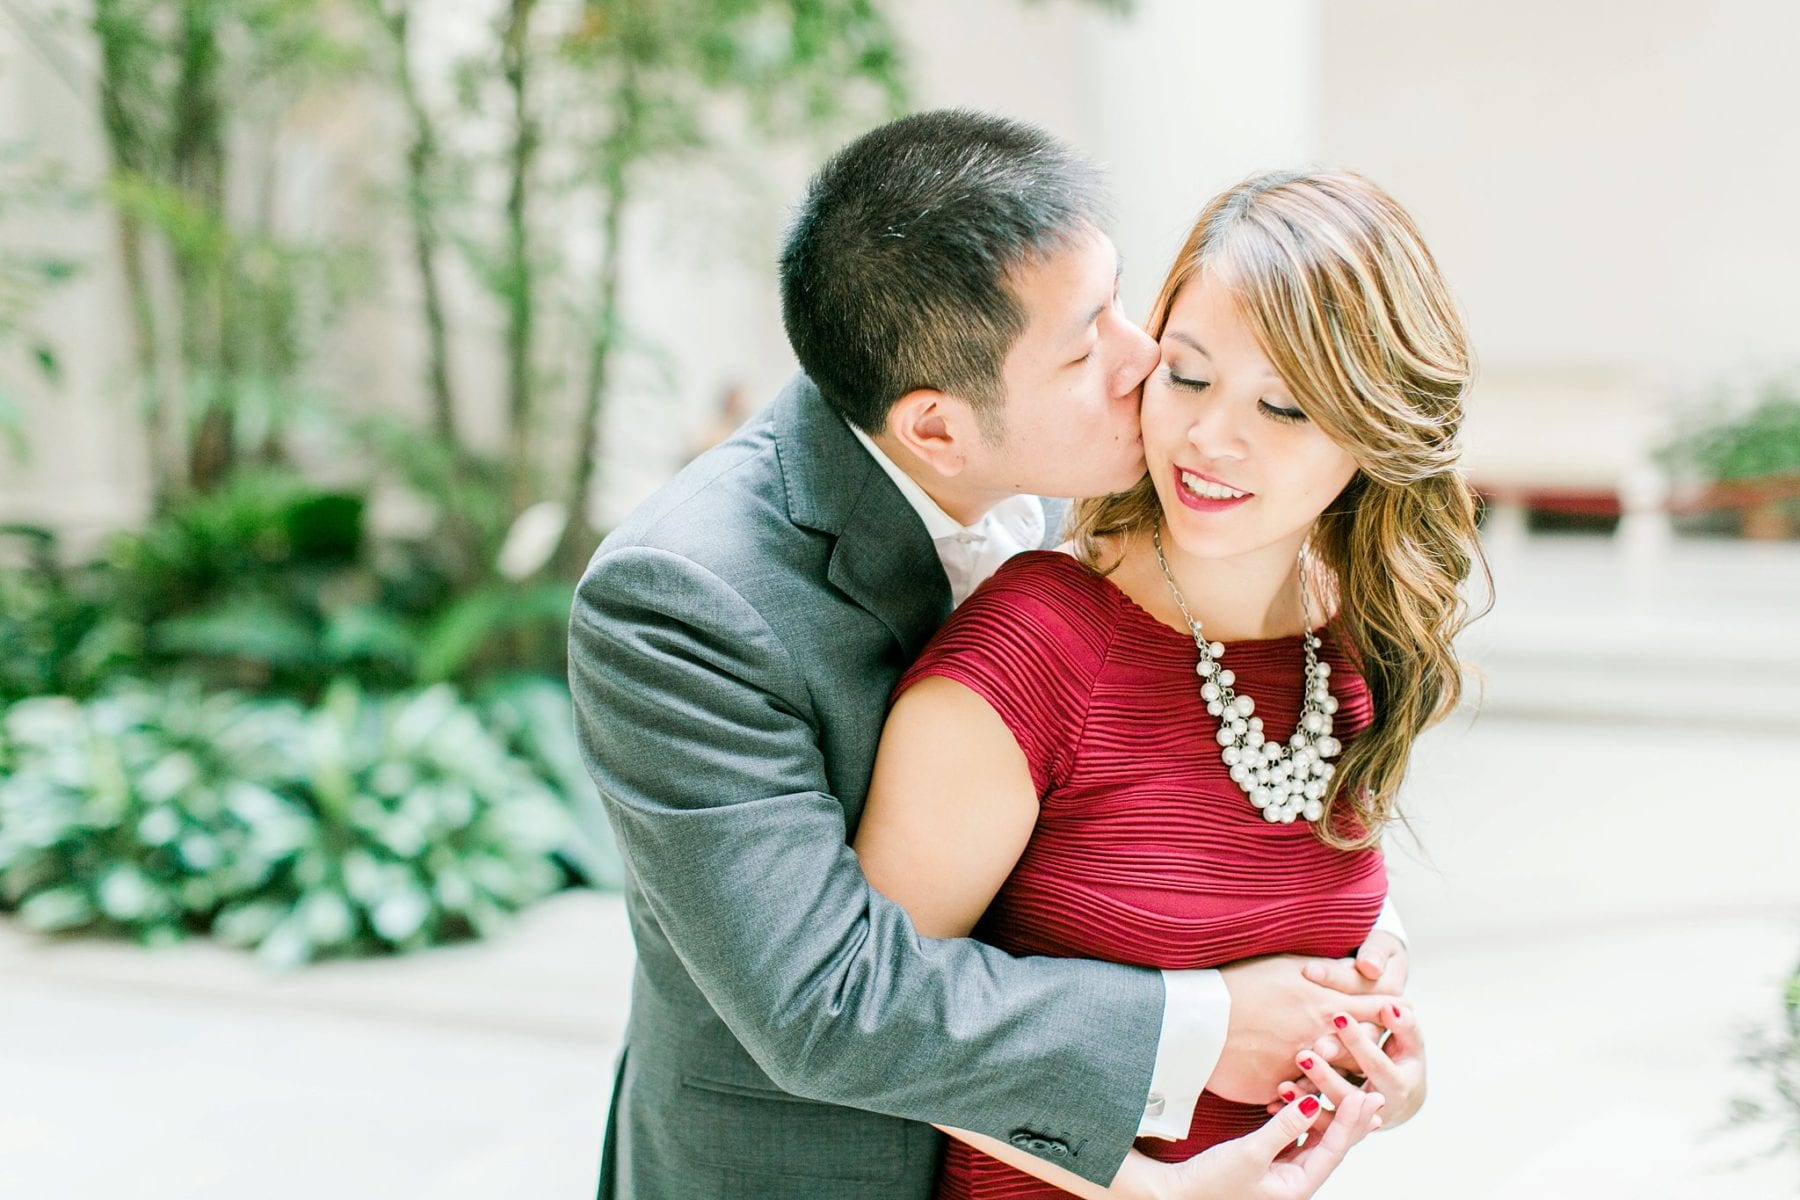 National Gallery of Art Engagement Photos Megan Kelsey Photography Washington DC Wedding Photographer Sy-yu & Anthony-129.jpg